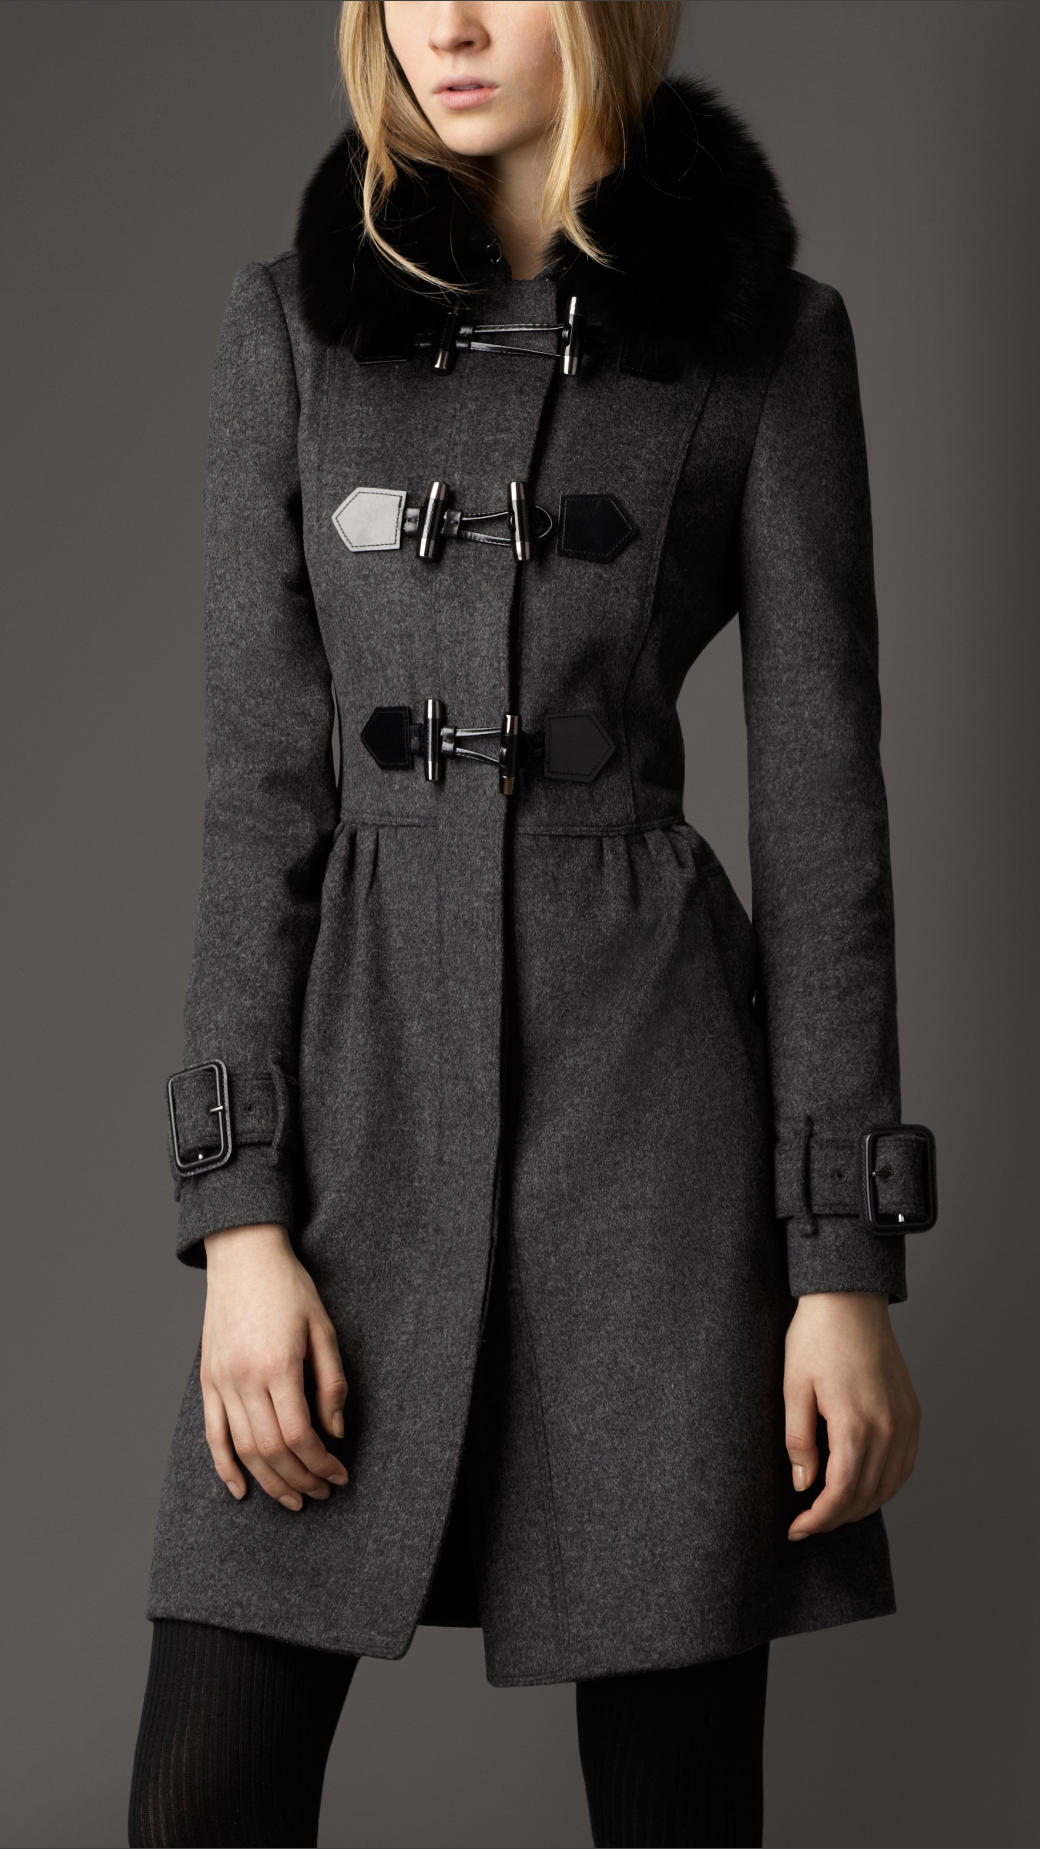 Burberry Fur Collar Wool Cashmere Duffle Coat in Gray | Lyst